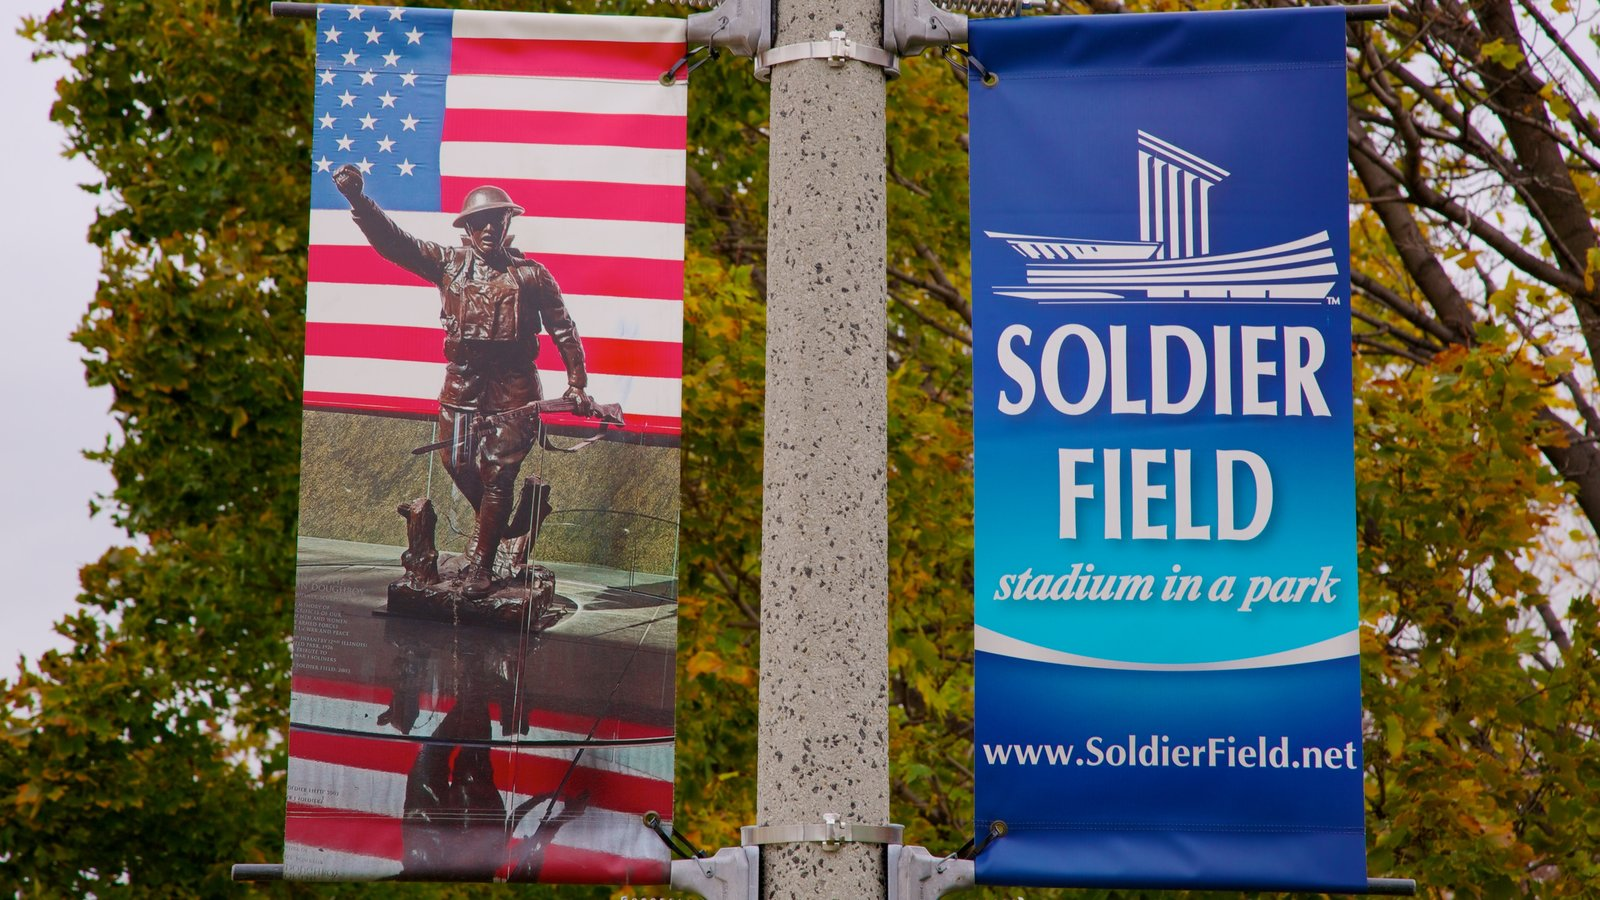 Soldier Field which includes signage, military items and a memorial